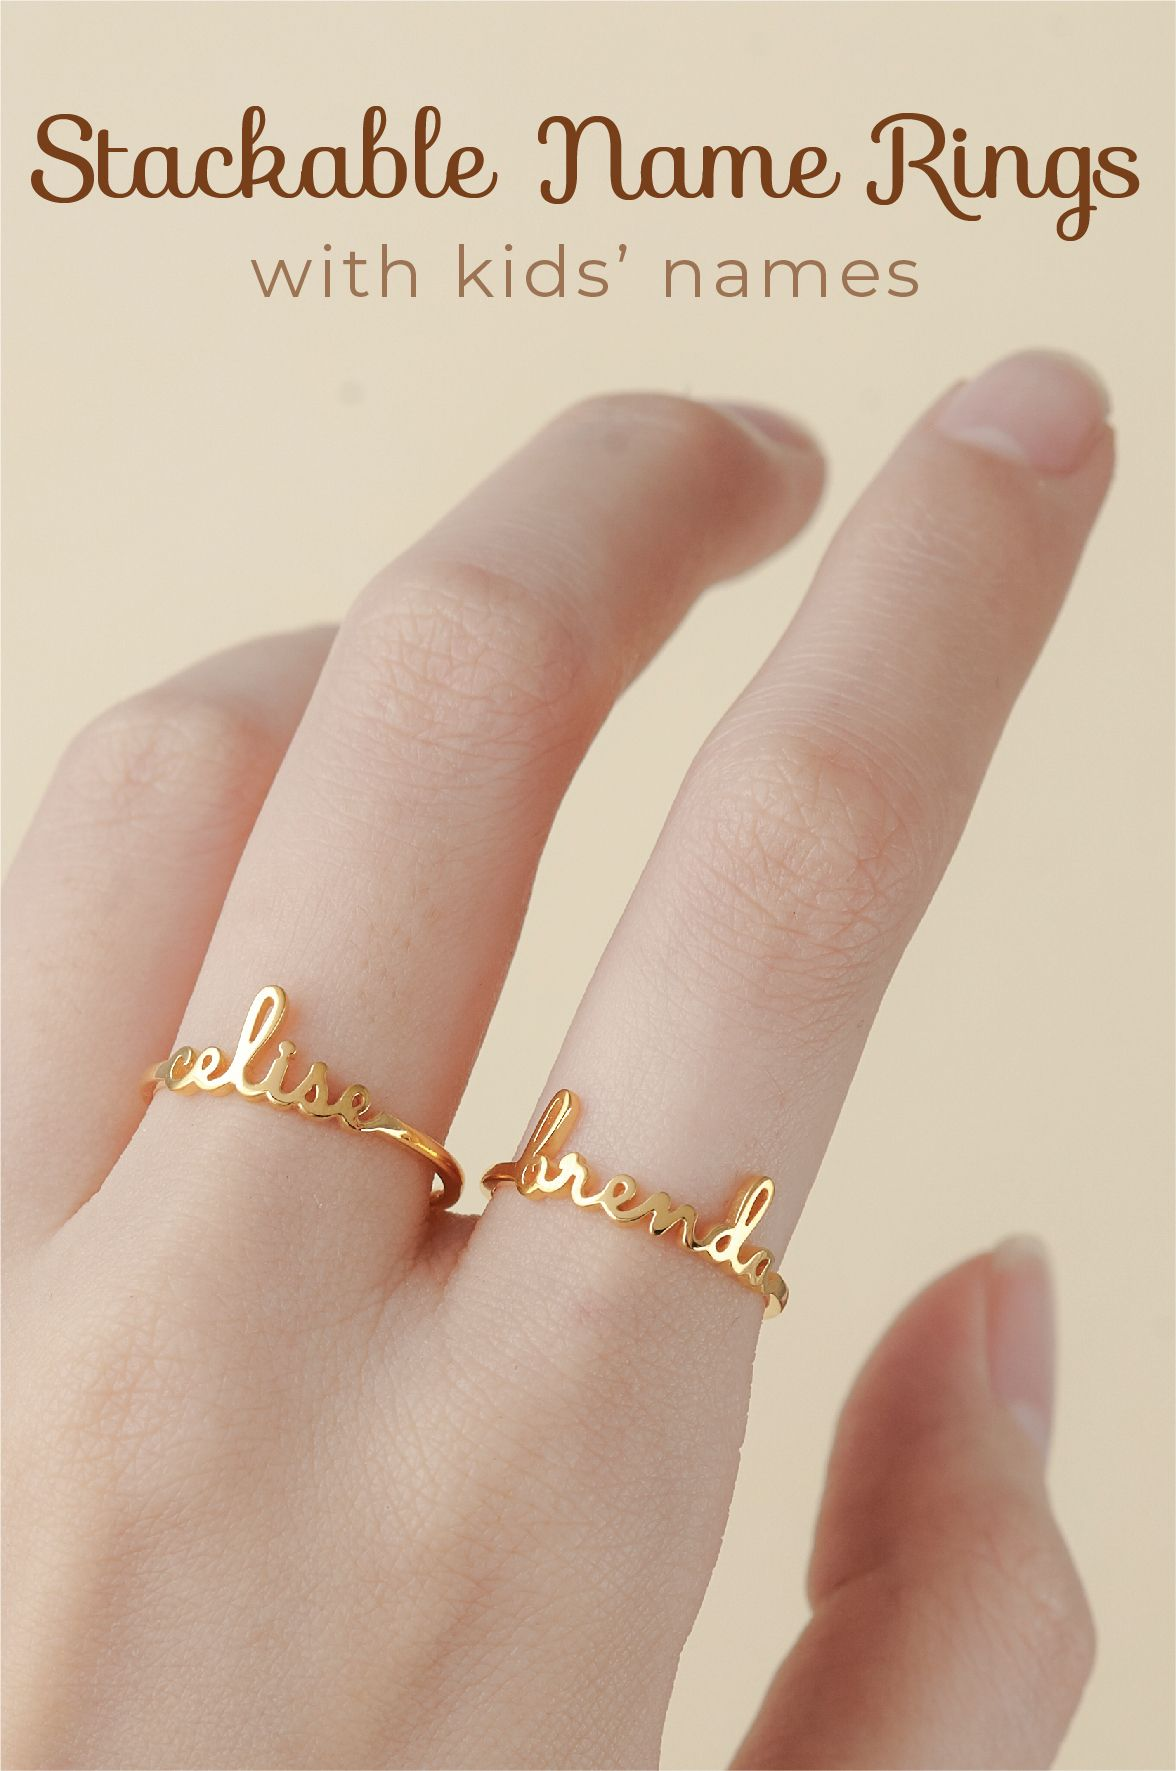 Stackable Name Rings Personalized Rings With Kids Name Name